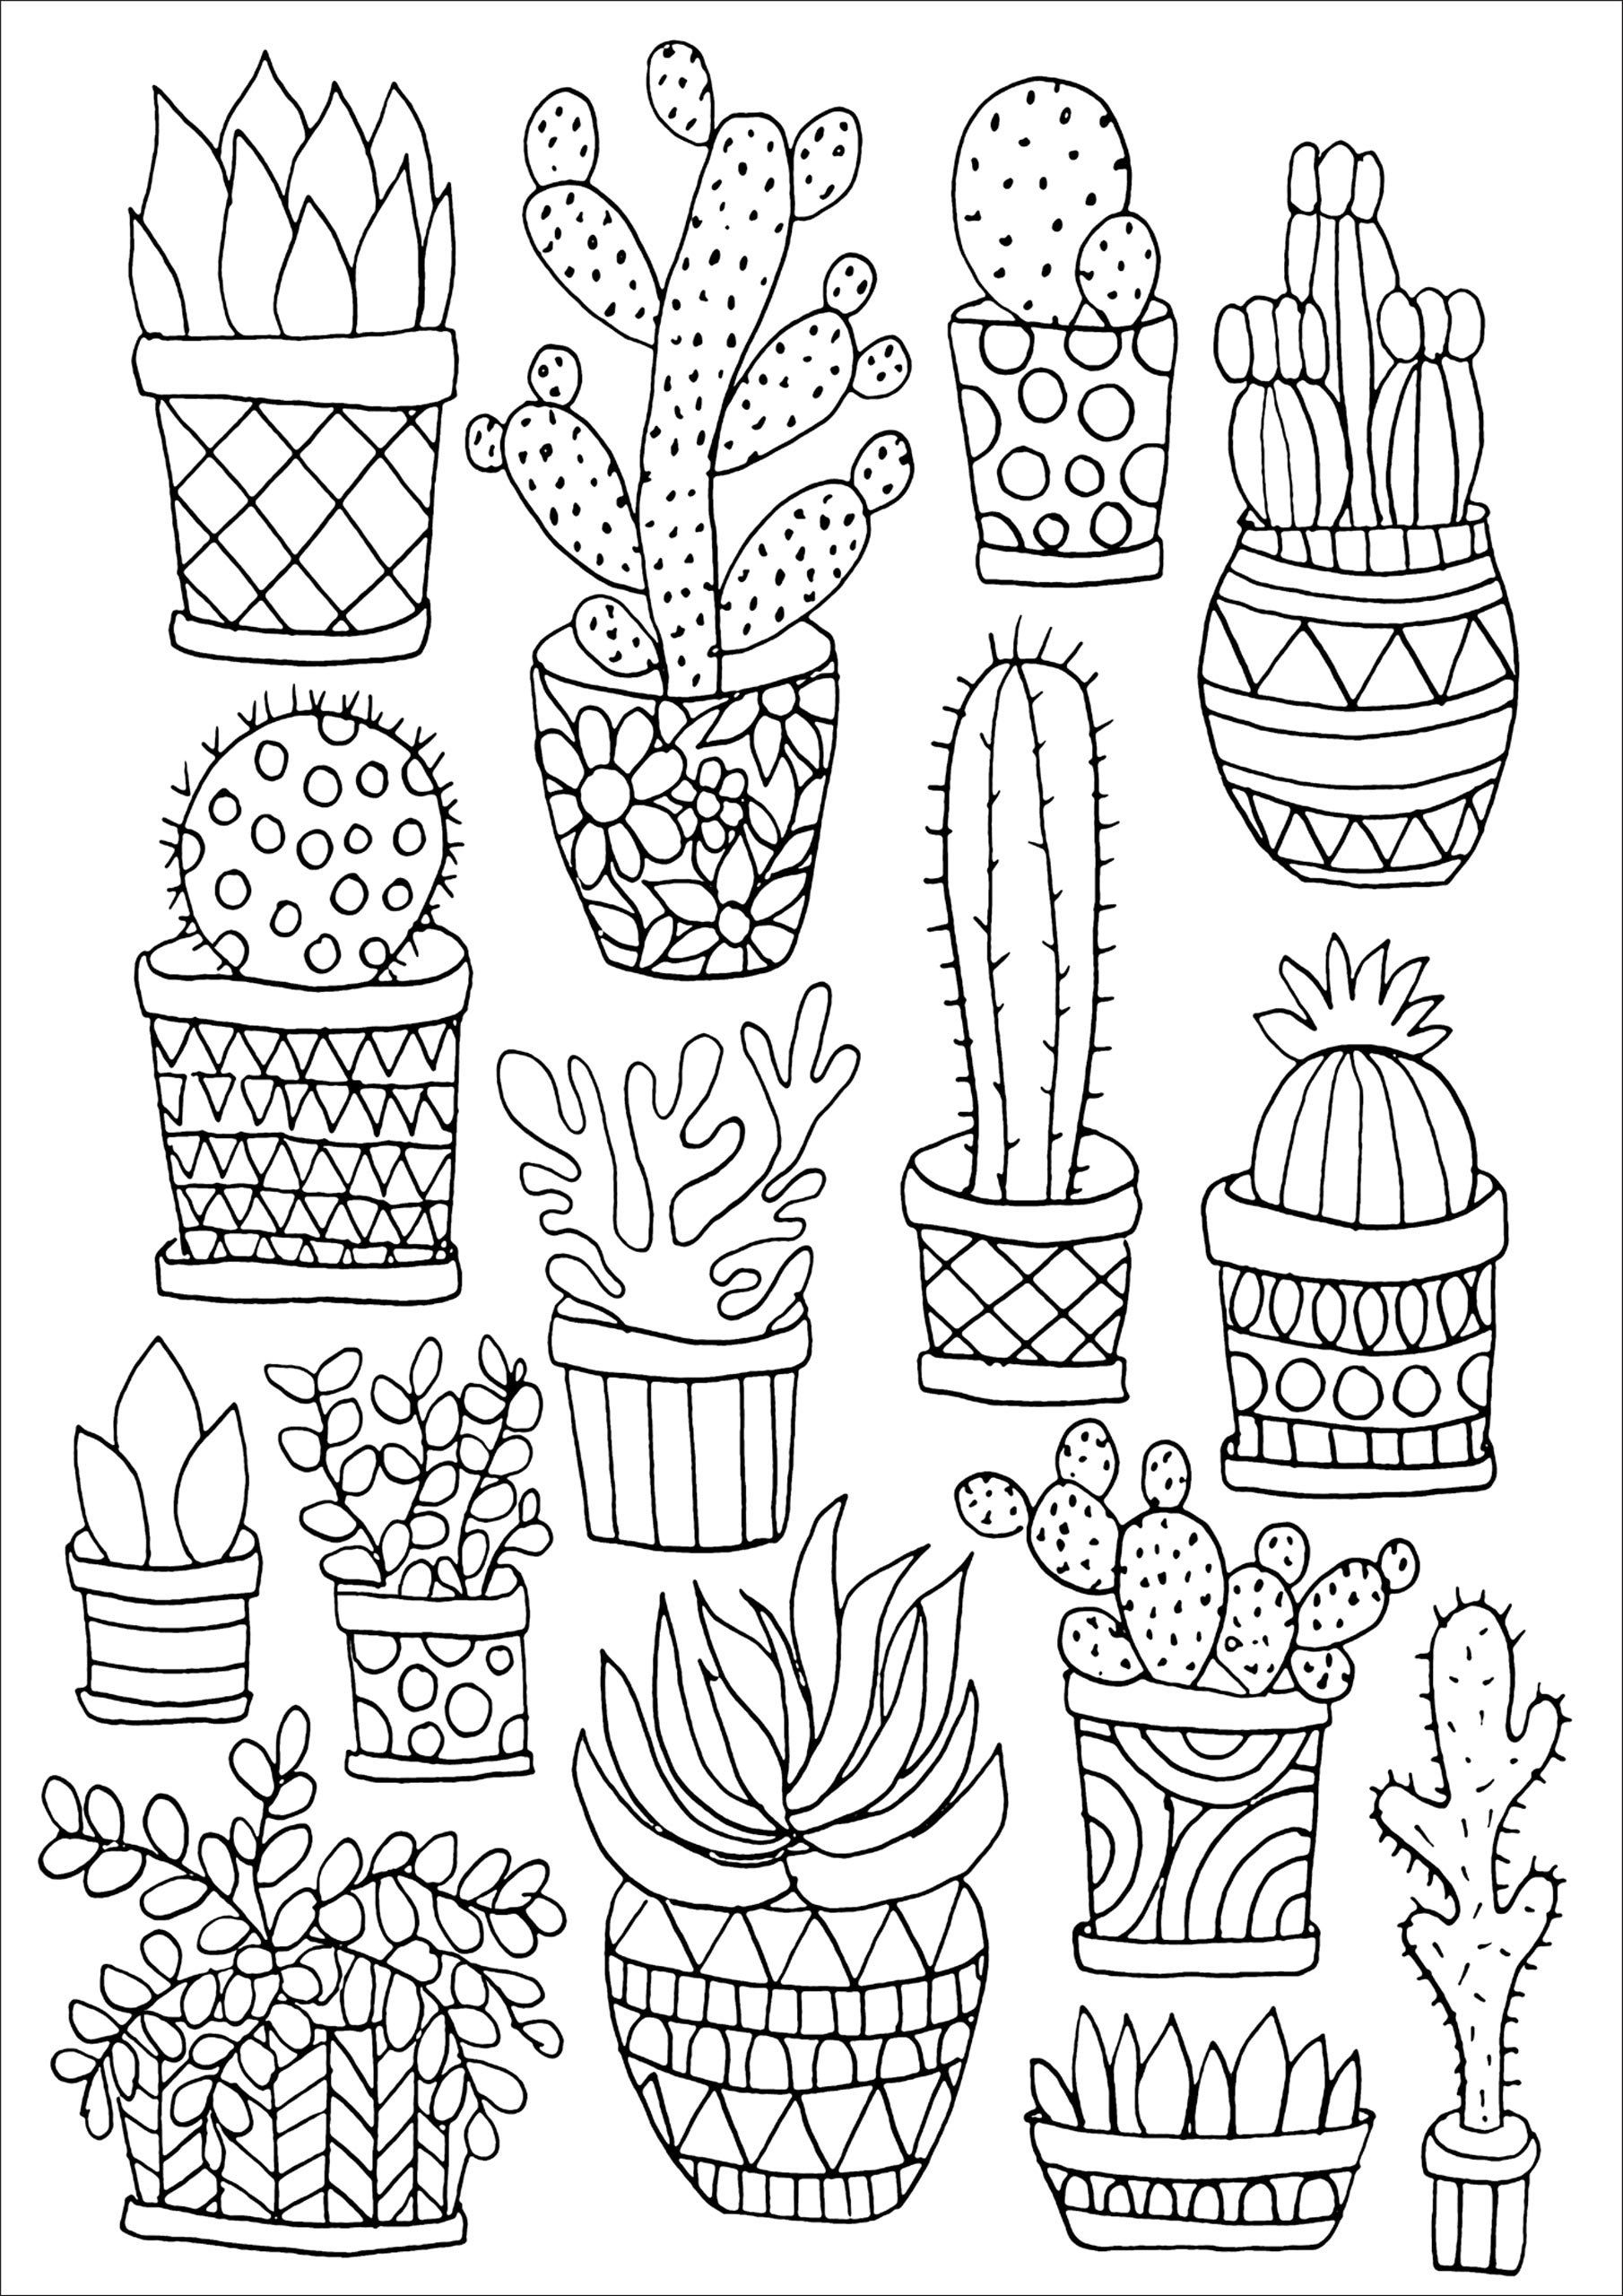 Coping Up With Stress Coloring Books Cactus Drawing Coloring Pages